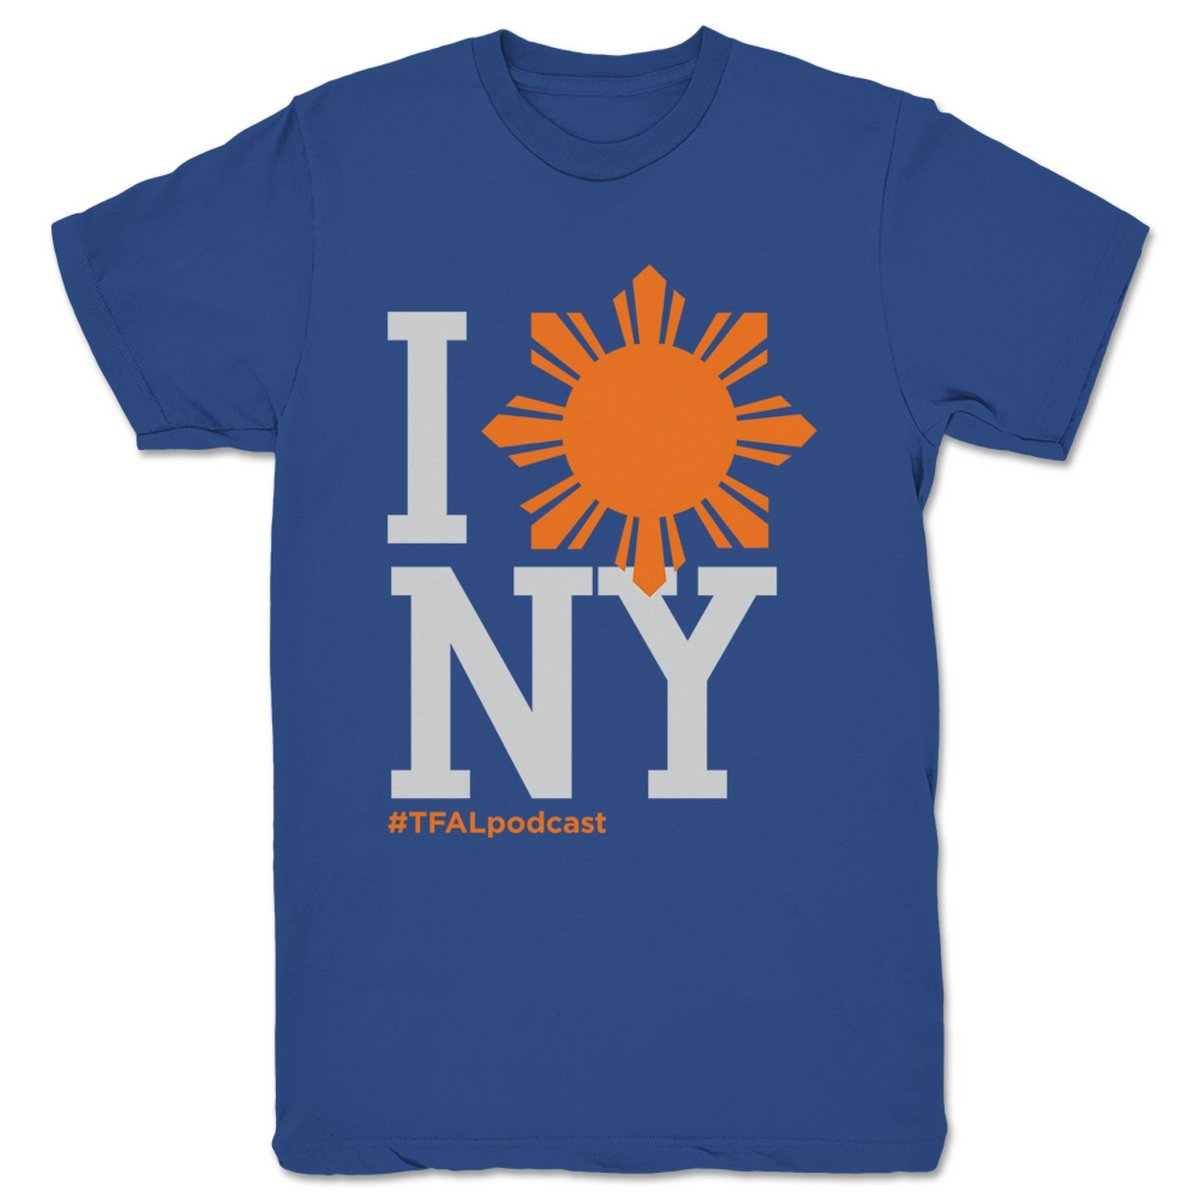 This-Filipino-American-Life-NY---Spike-Lee-Unisex-Tee-Royal-Blue